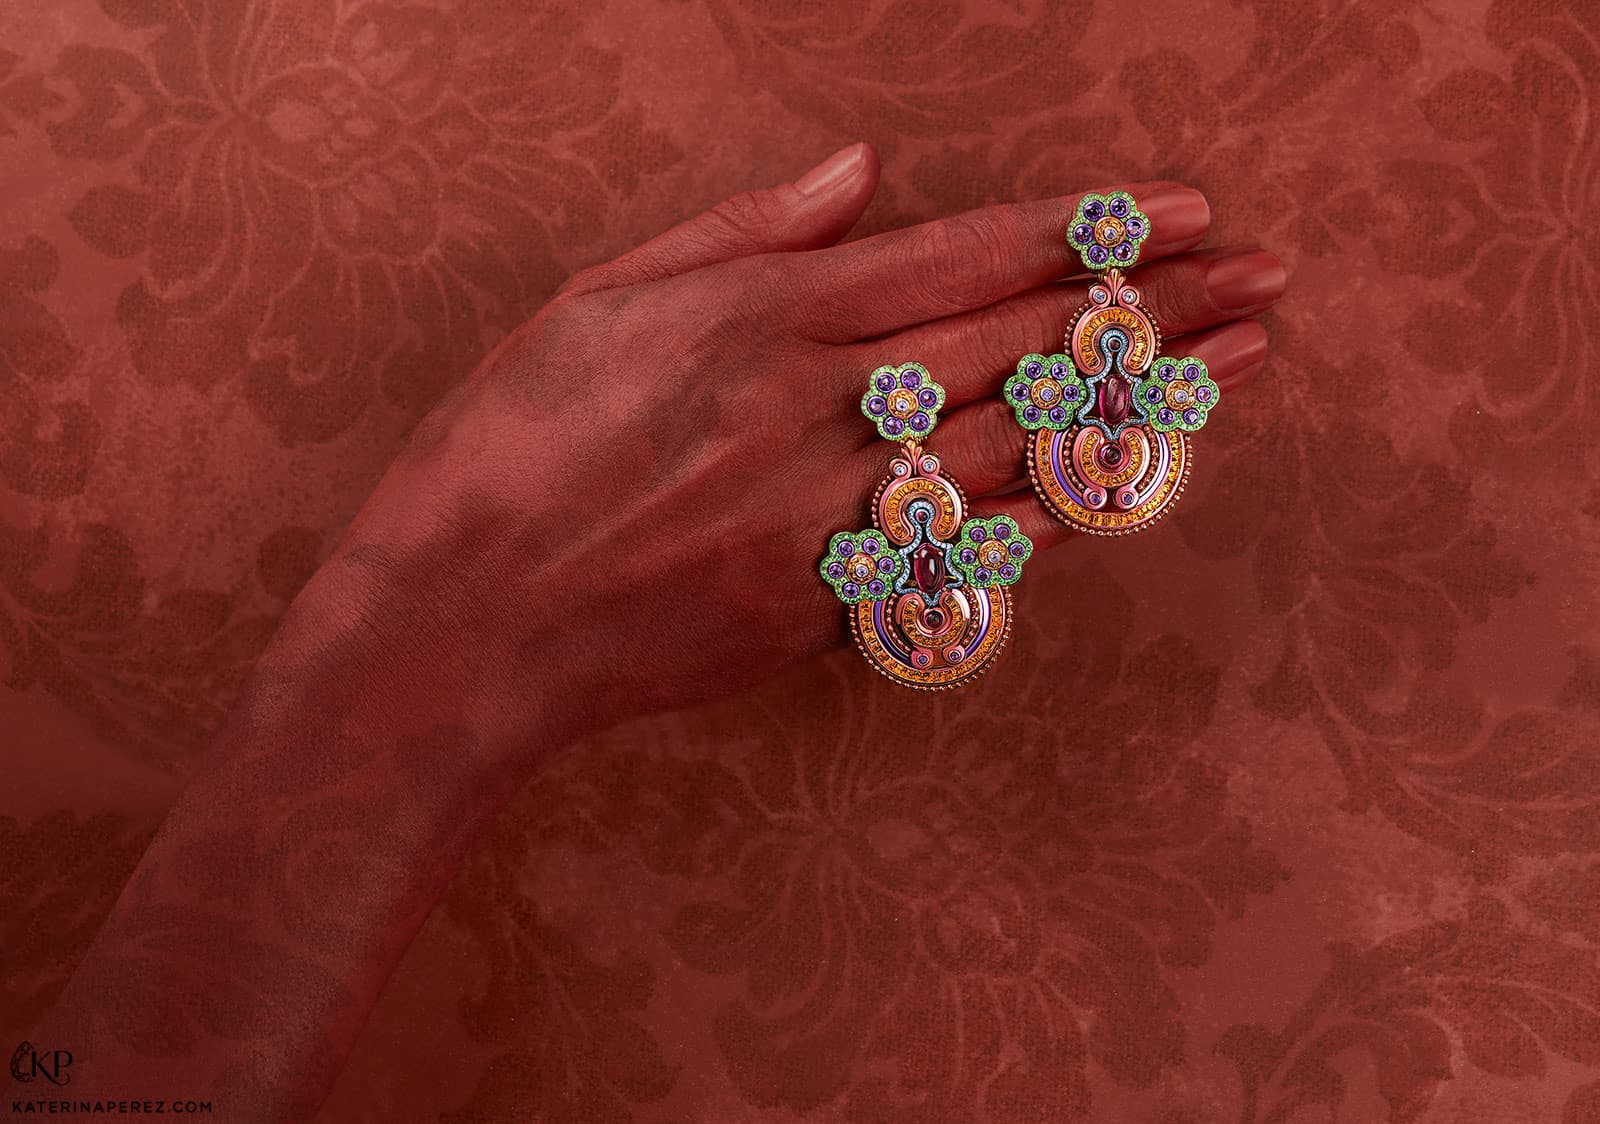 Chopard earrings from the 'Red Carpet' collection with sapphires